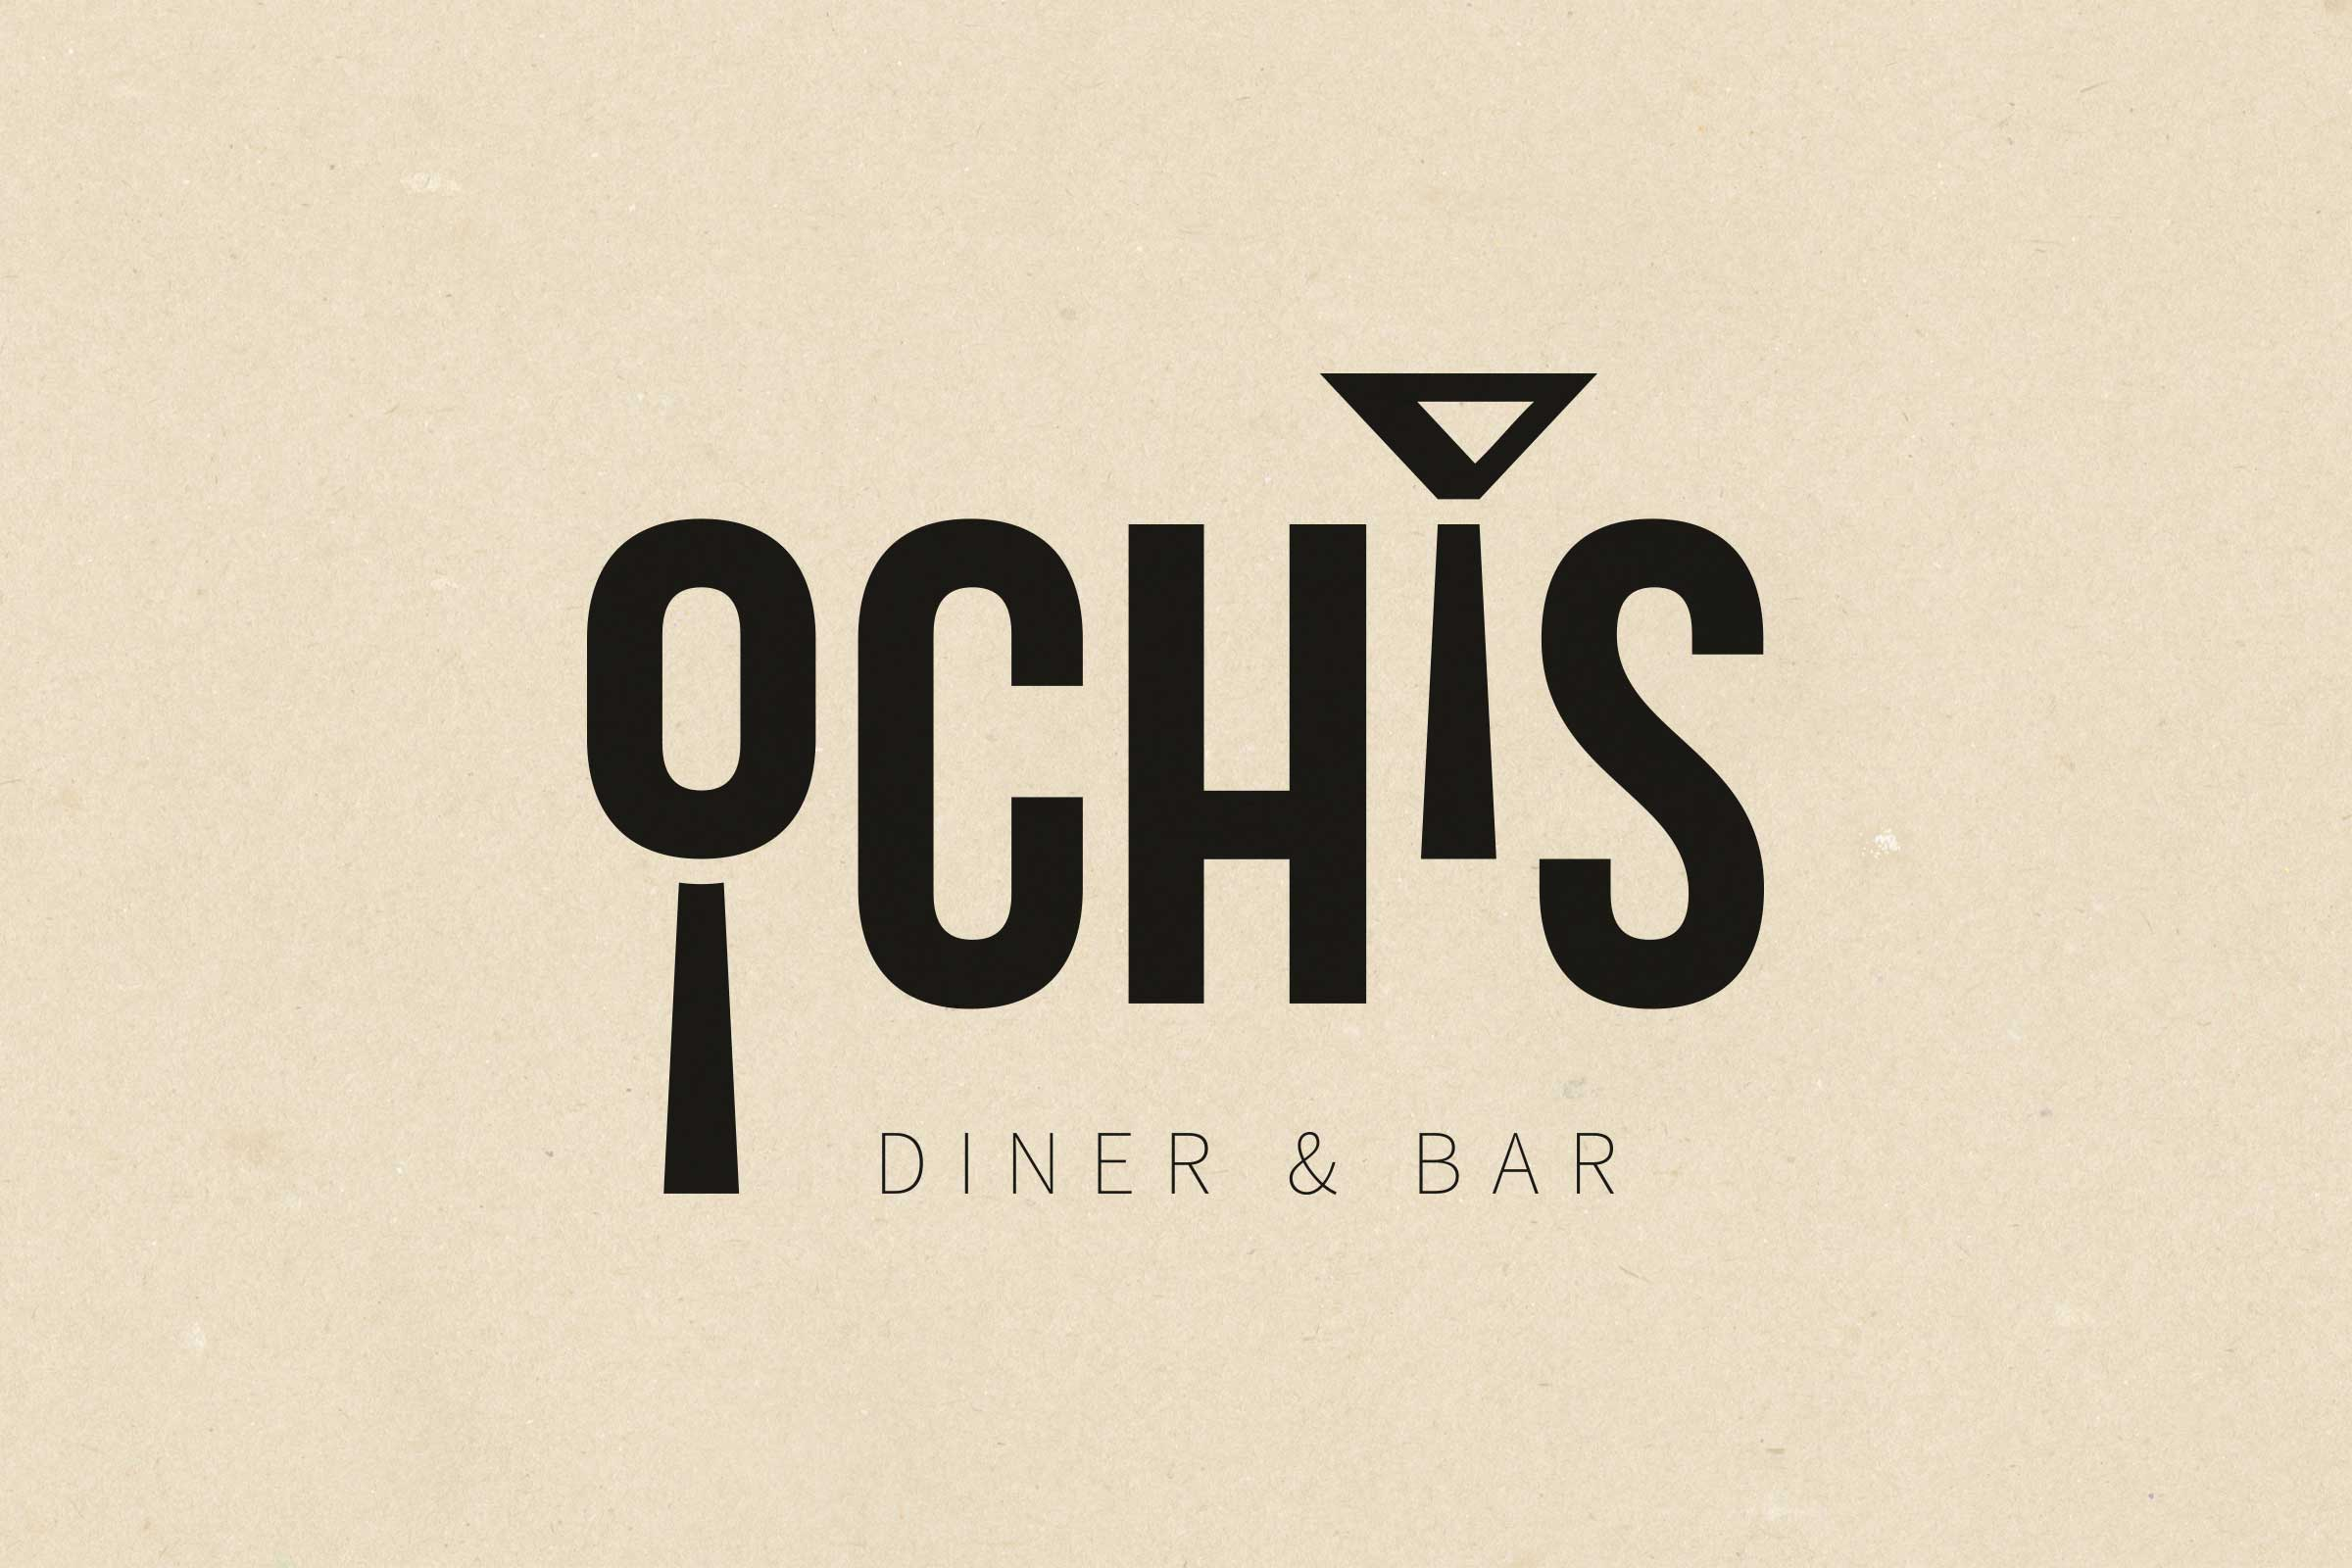 Logo-Kreation: Ochis, Diner & Bar